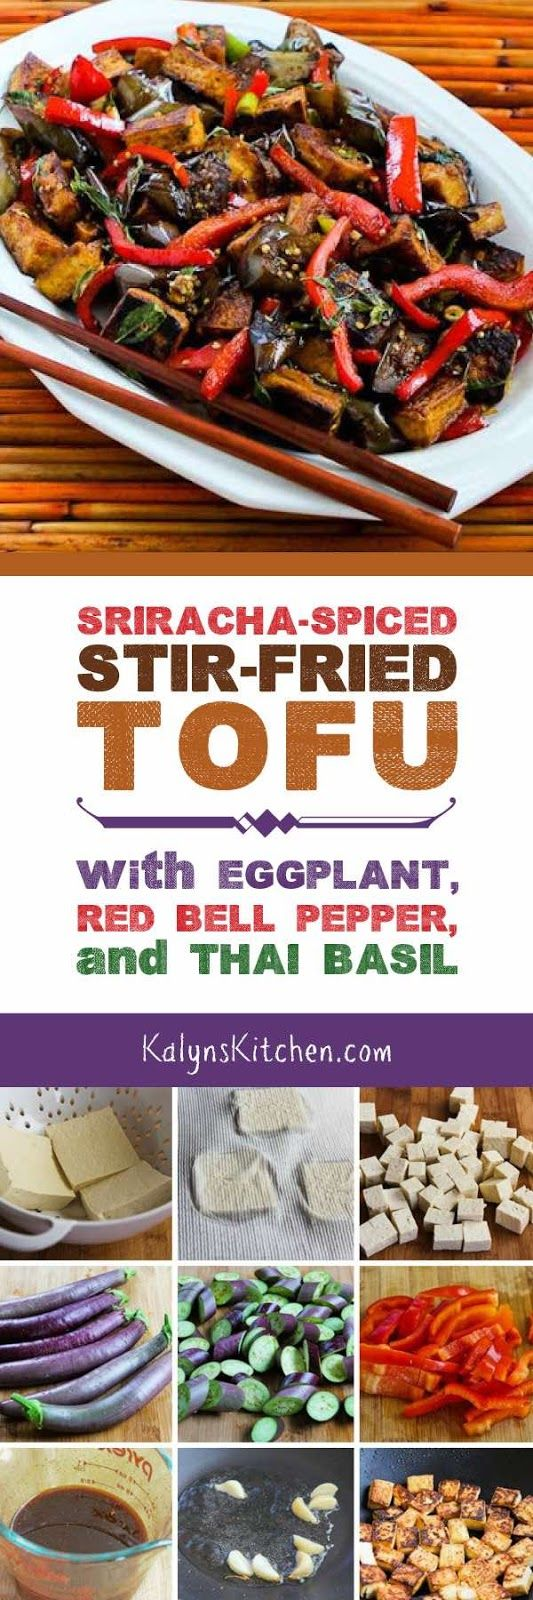 There are amazing flavors goin on in this Sriracha-Spiced Stir-Fried Tofu with Eggplant, Red Bell Pepper, and Thai Basil, and this delicious meatless recipe is also low-carb, low-glycemic, gluten-free, dairy-free, and South Beach Diet friendly. If you have Japanese Eggplant and Thai Basil in your garden, this is a MUST MAKE! [found on KalynsKitchen.com]